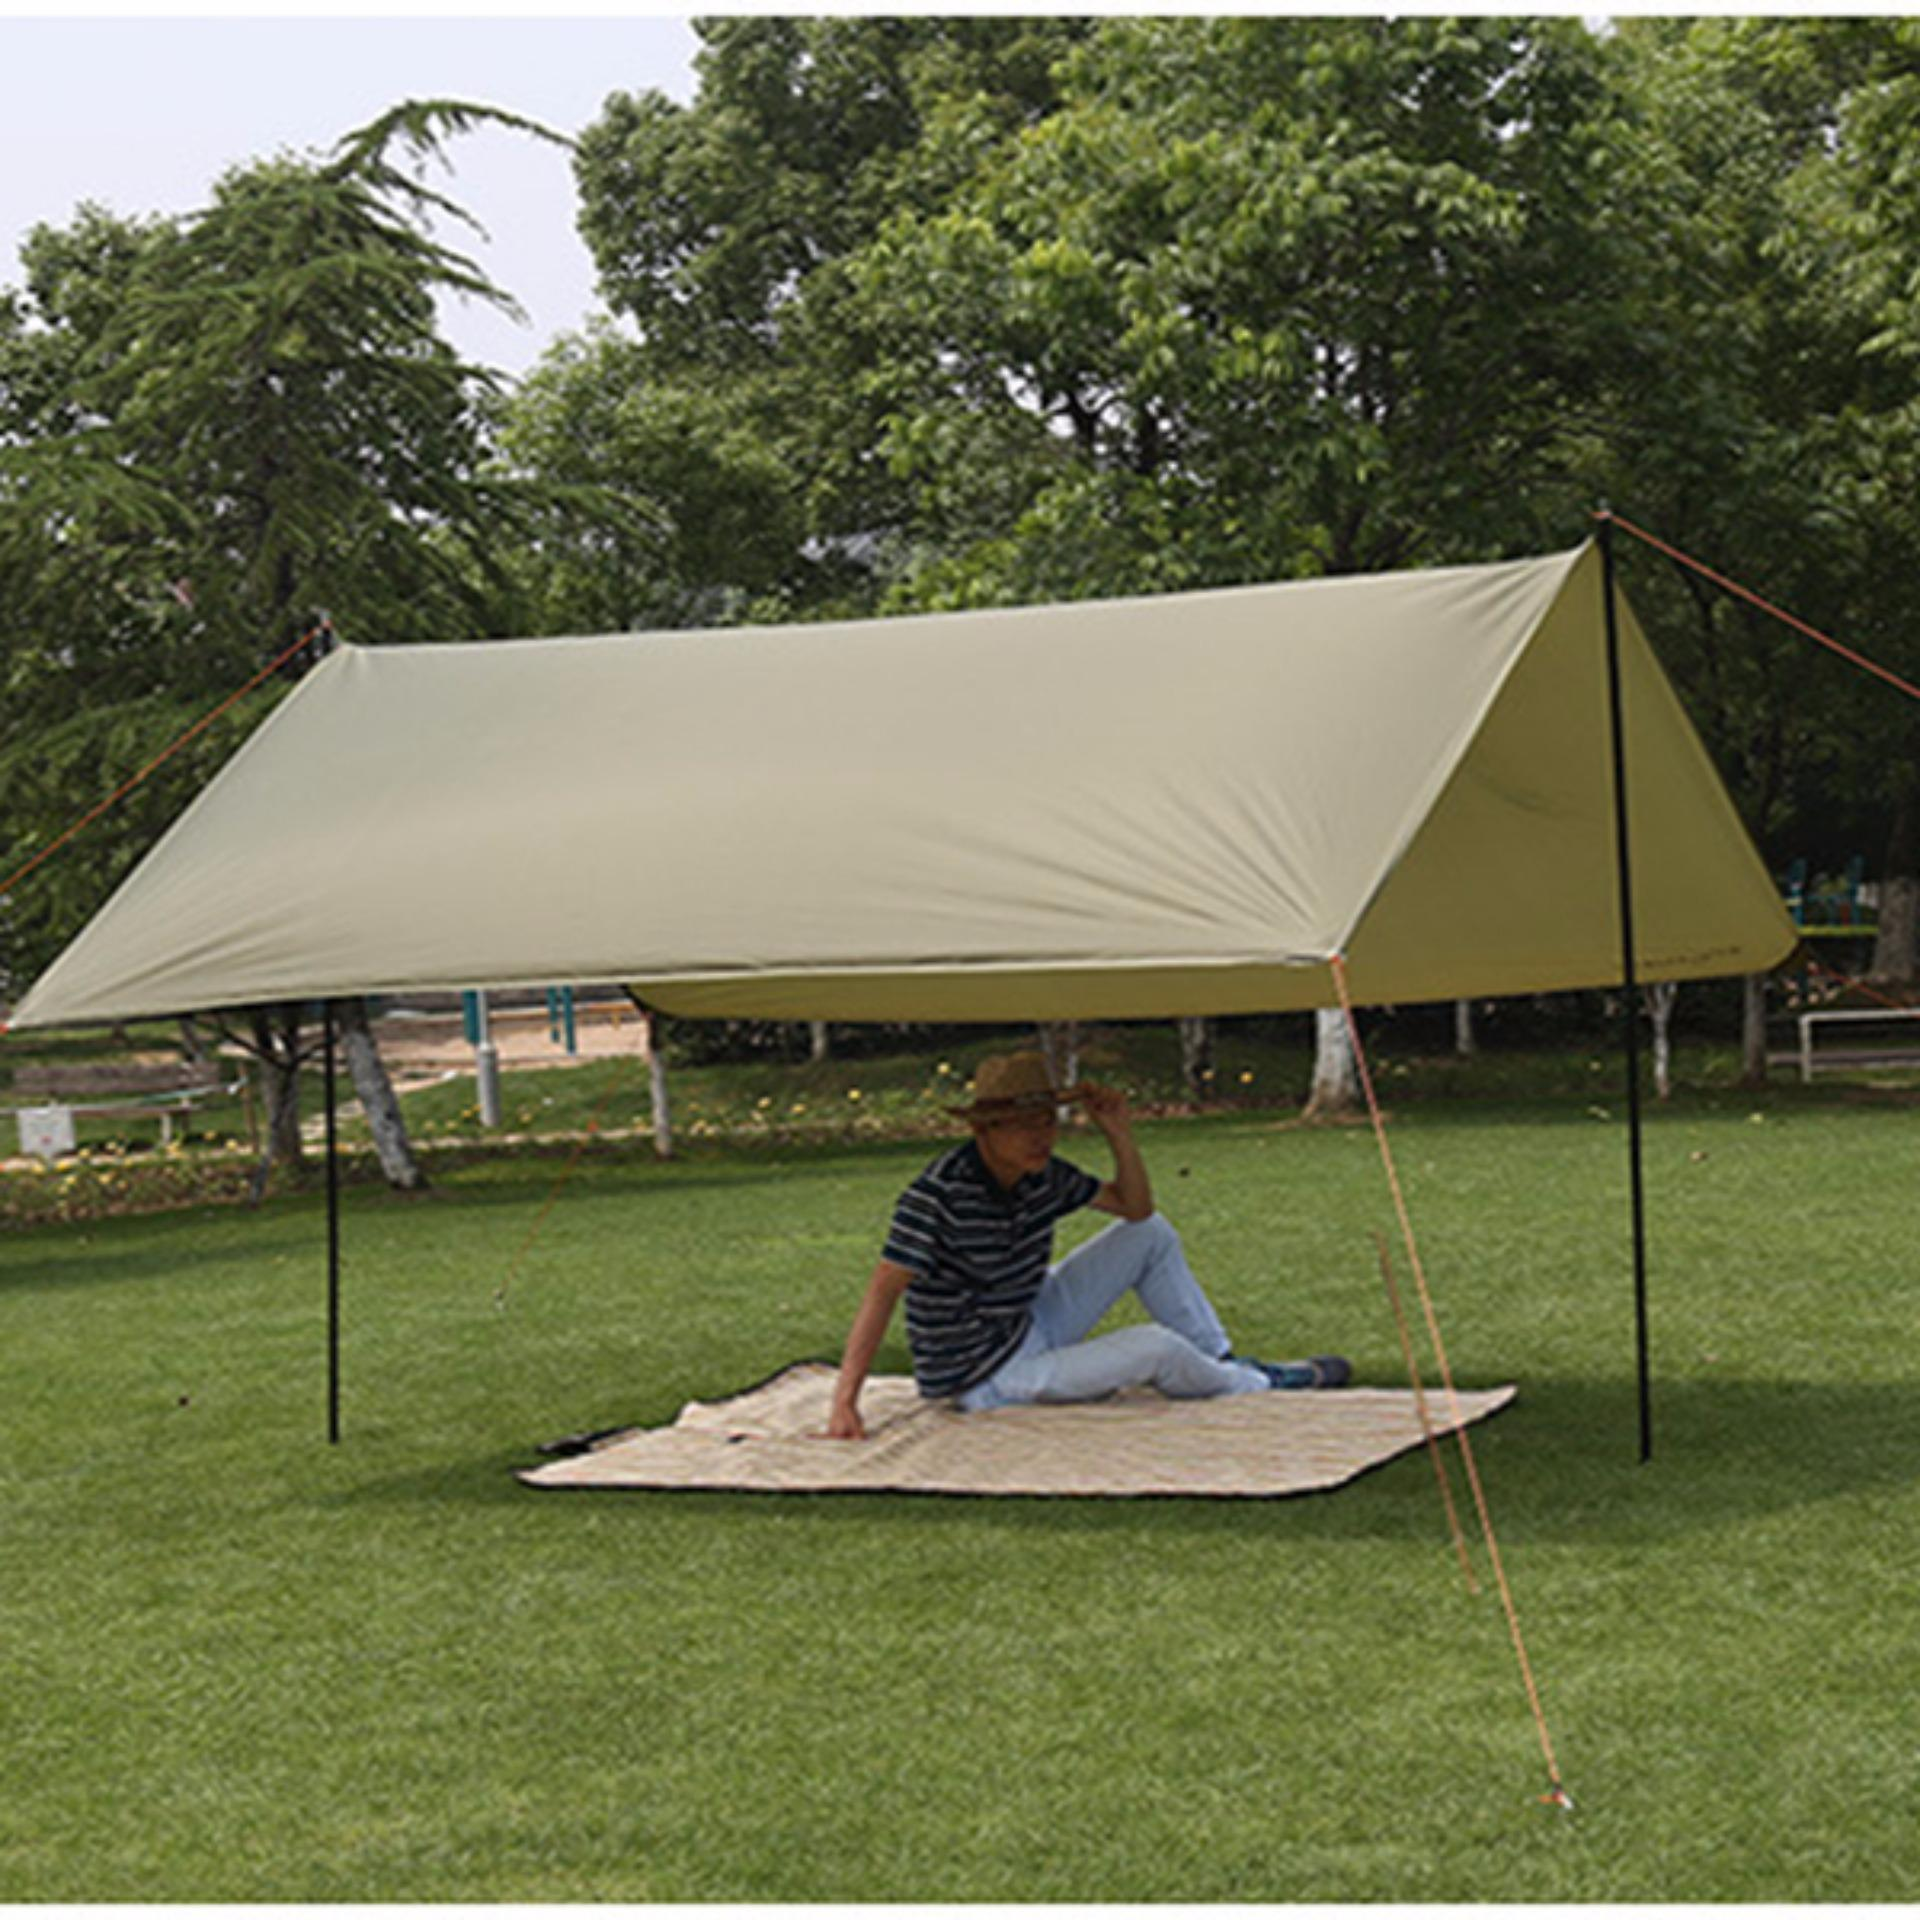 ... Recreation Outdoor Tent Shelter The Sun Awning Collapsible GazeboCanopy Beach Tents C&ing Sun Shade tent( ... & Philippines | Recreation Outdoor Tent Shelter The Sun Awning ...